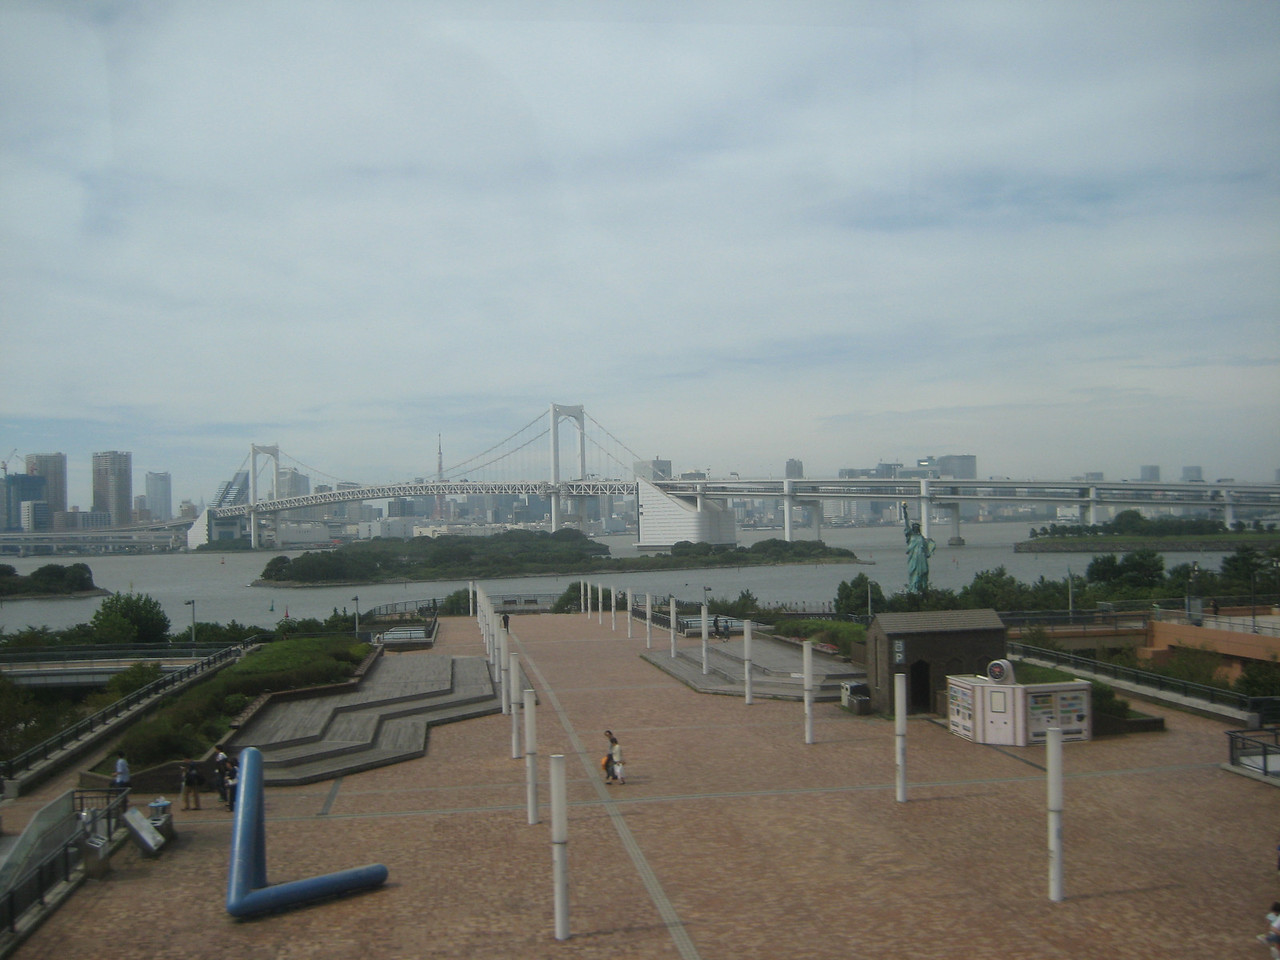 Taken during train ride around Tokyo Bay (statue of liberty)